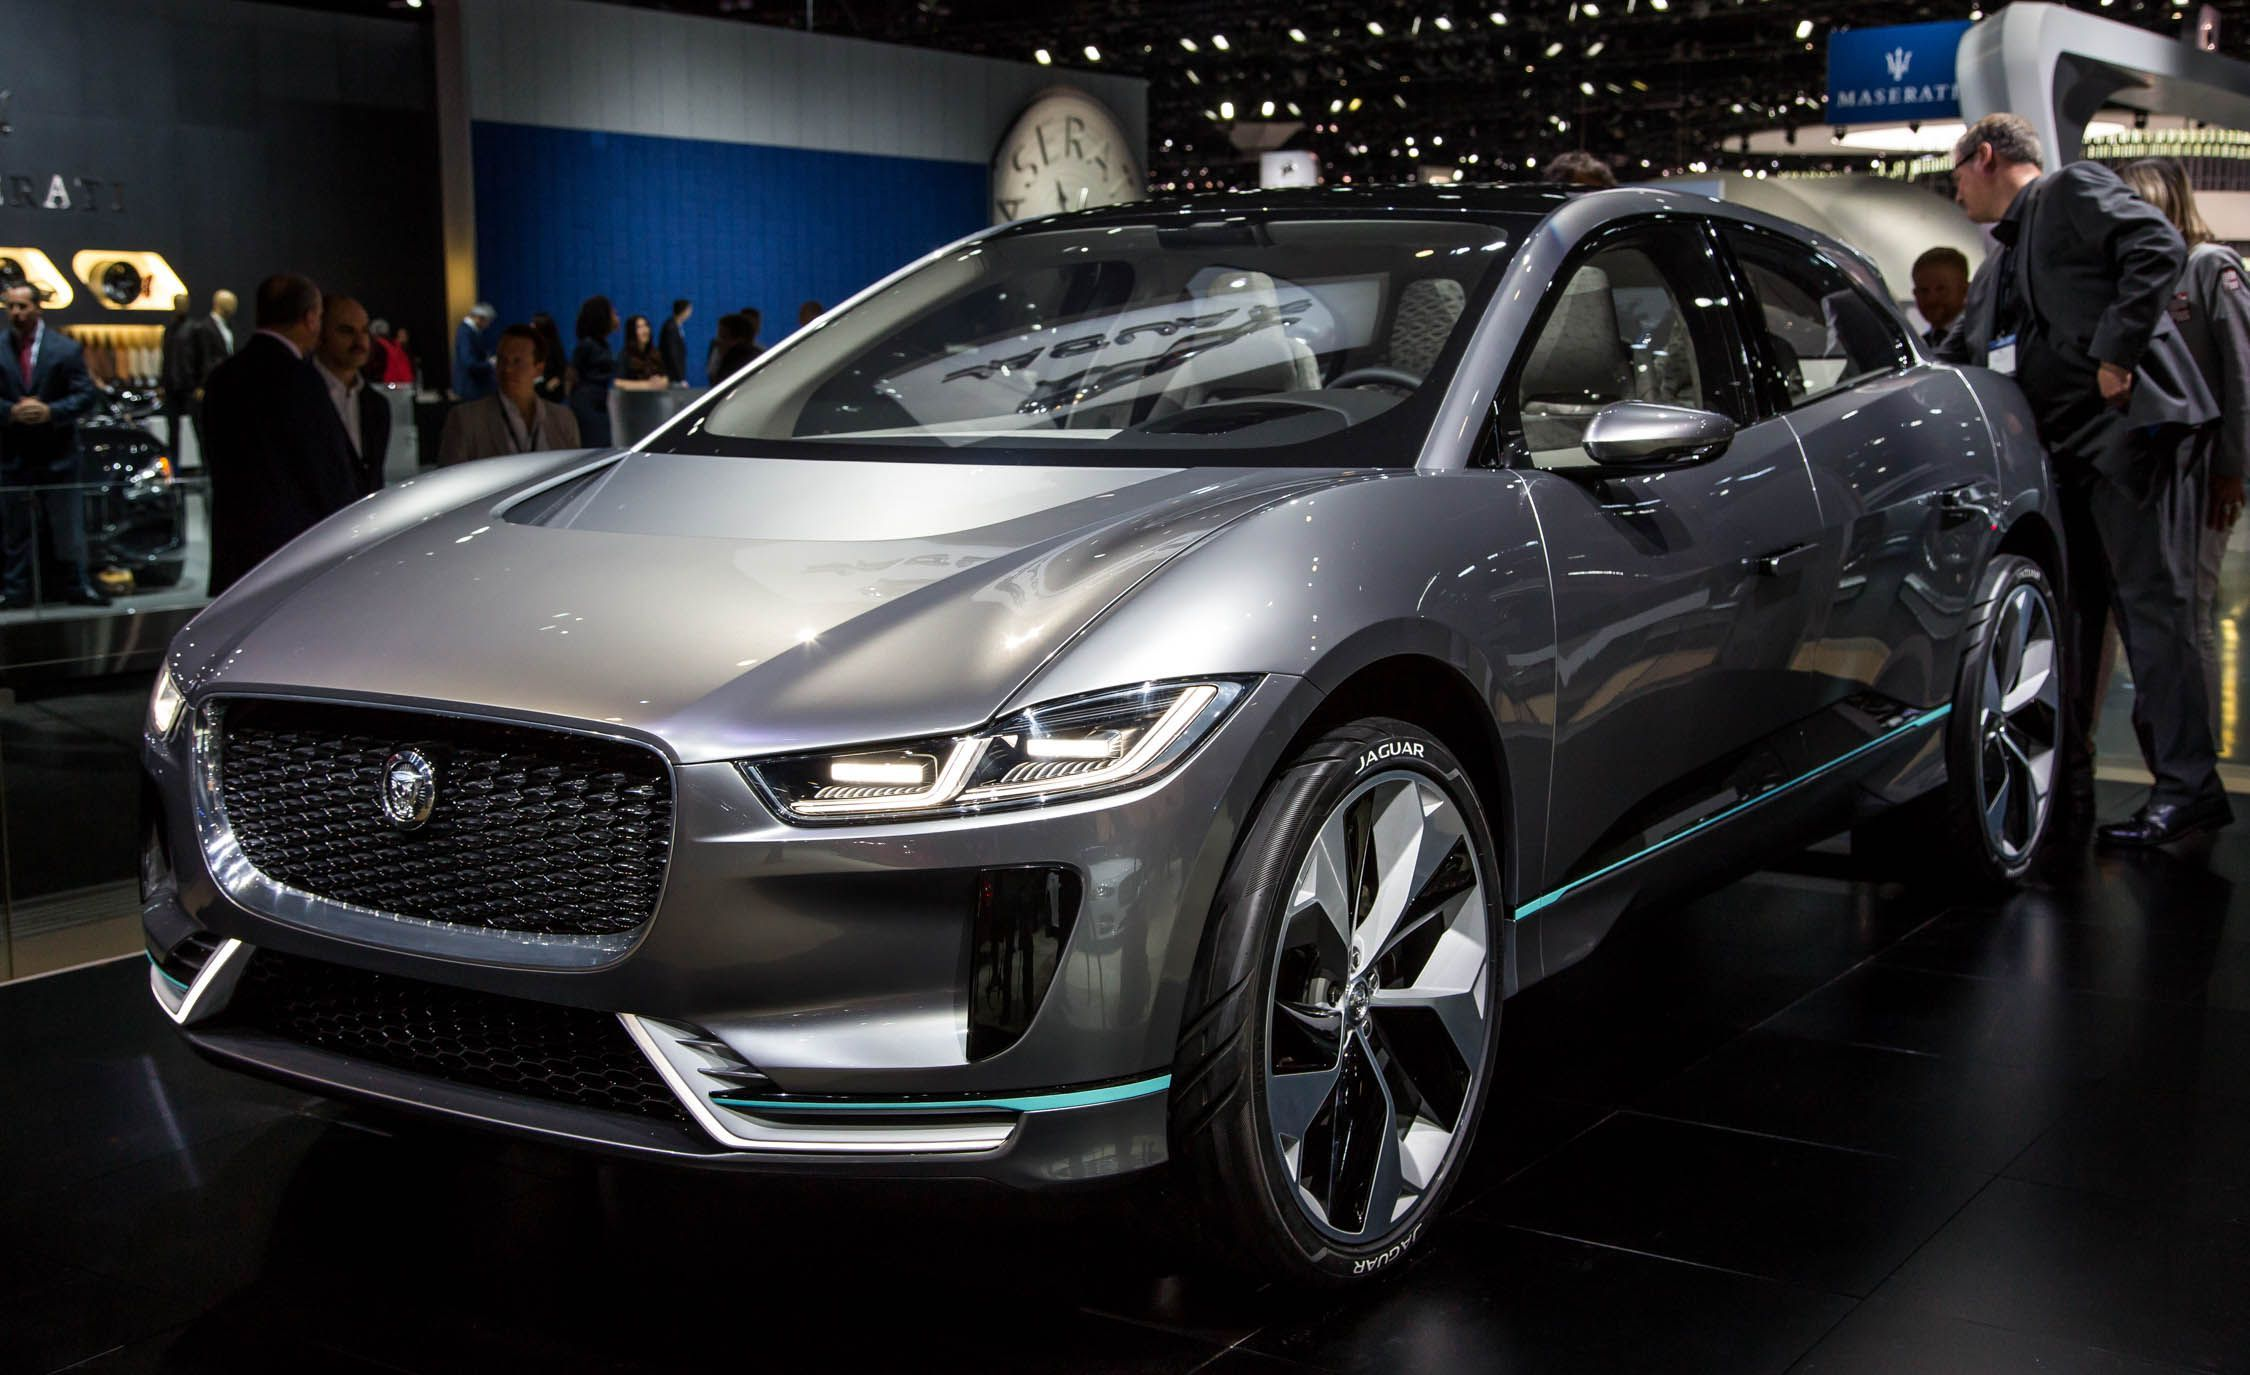 Jaguar I Pace Is An Electric Car And Produced By British Automotive Company Land